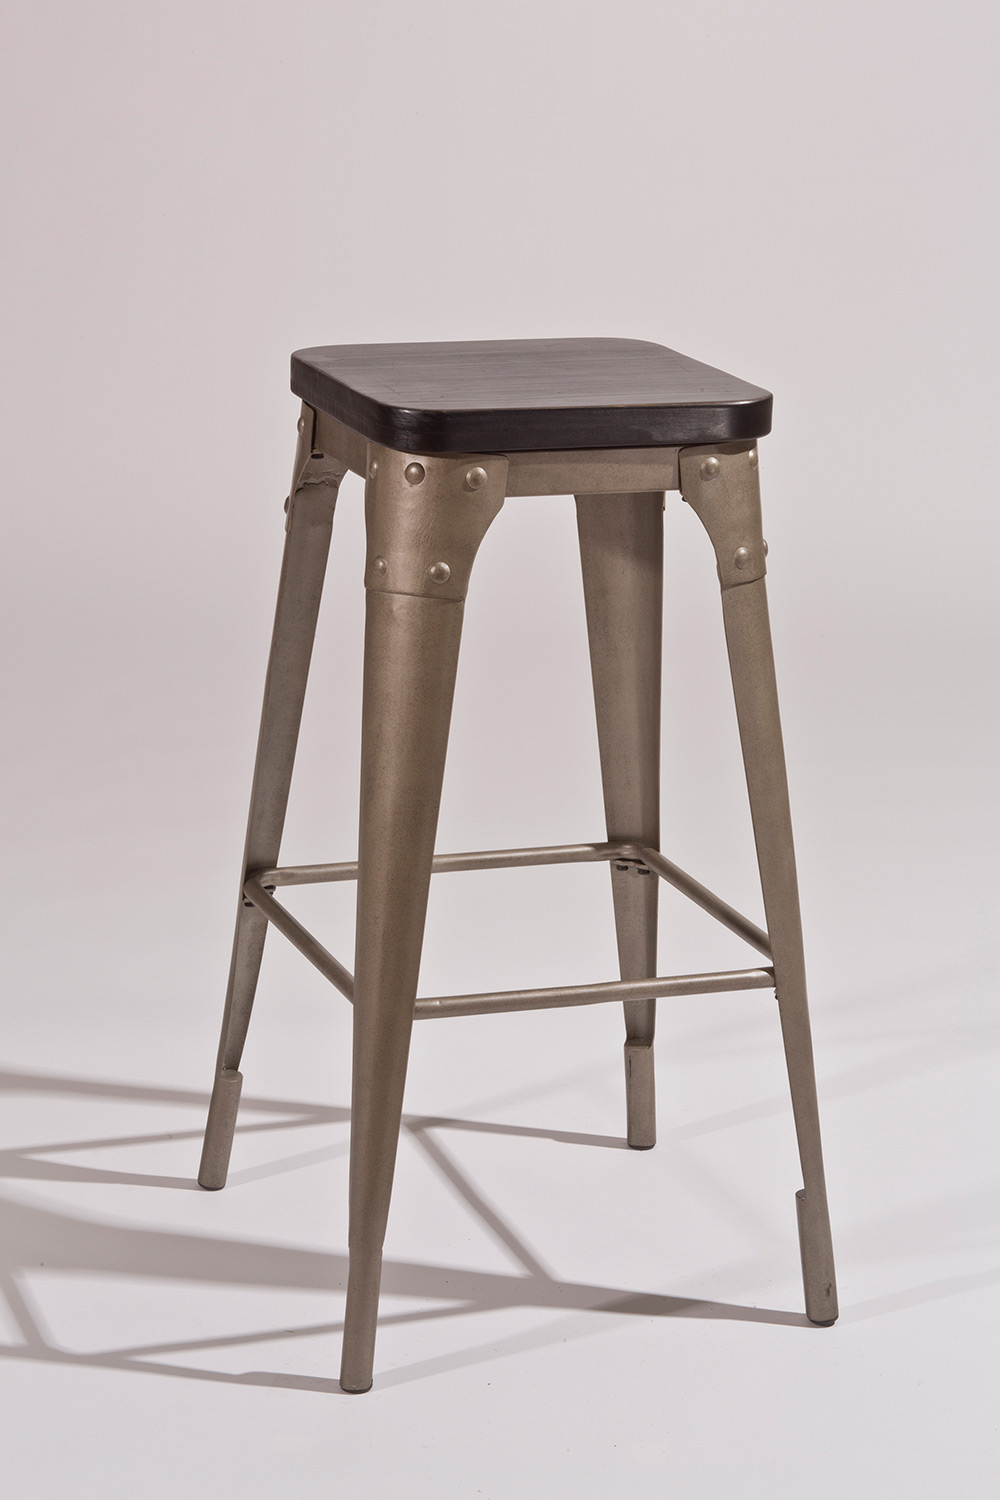 Hillsdale Morris Backless Bar Stool Dark Gray Black Wood